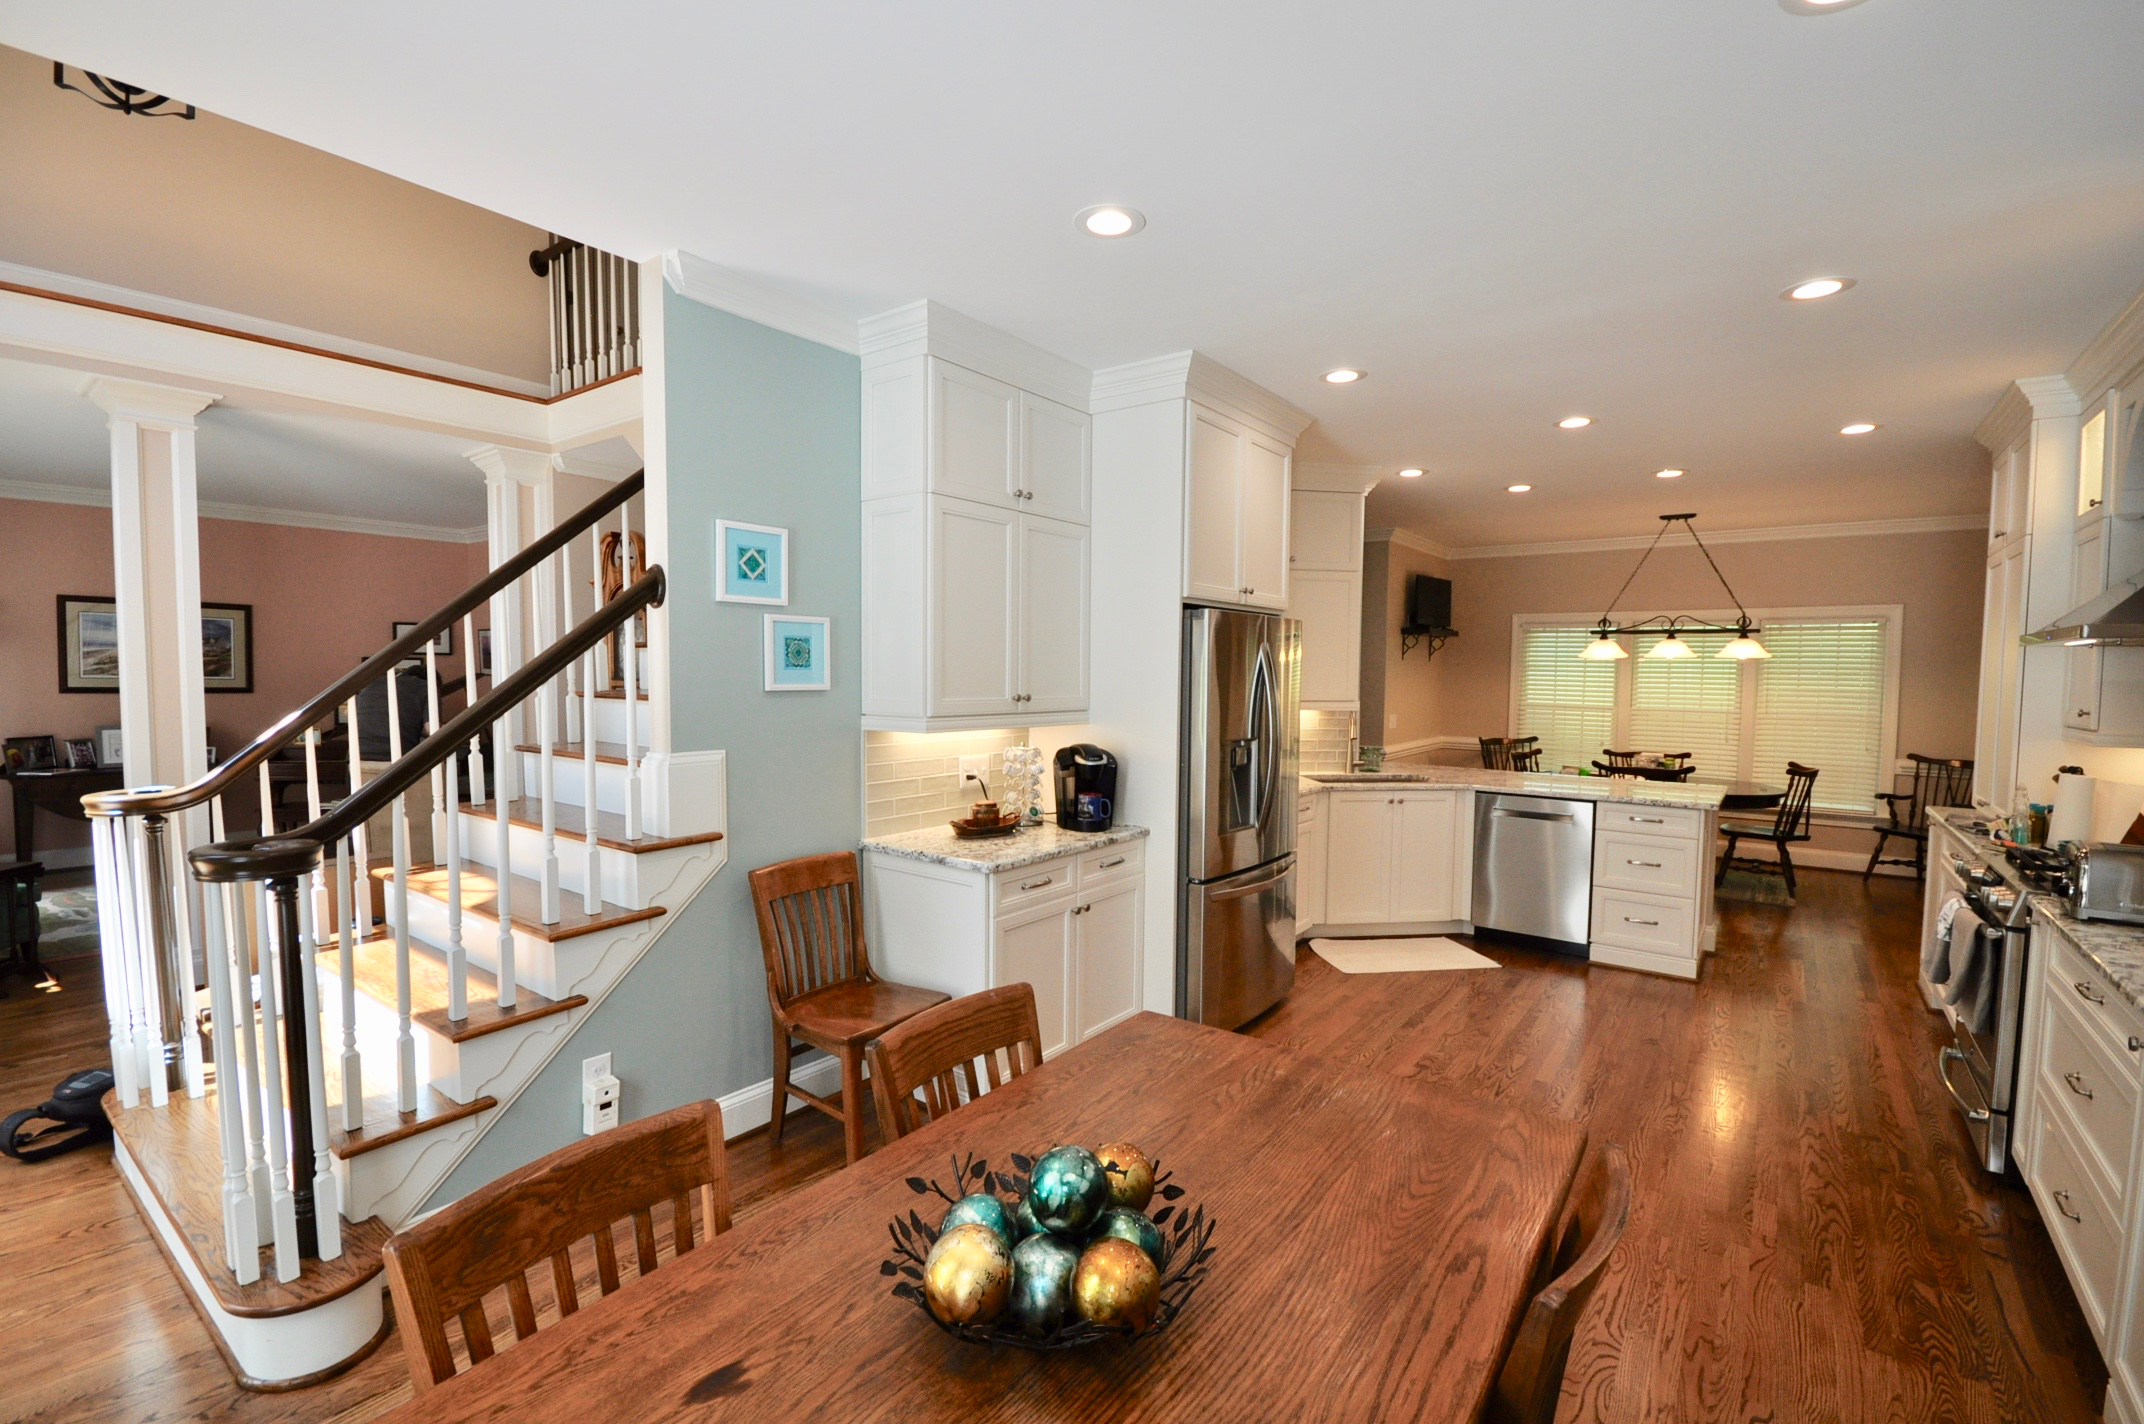 Dining room remodel by Riverbirch Remodeling